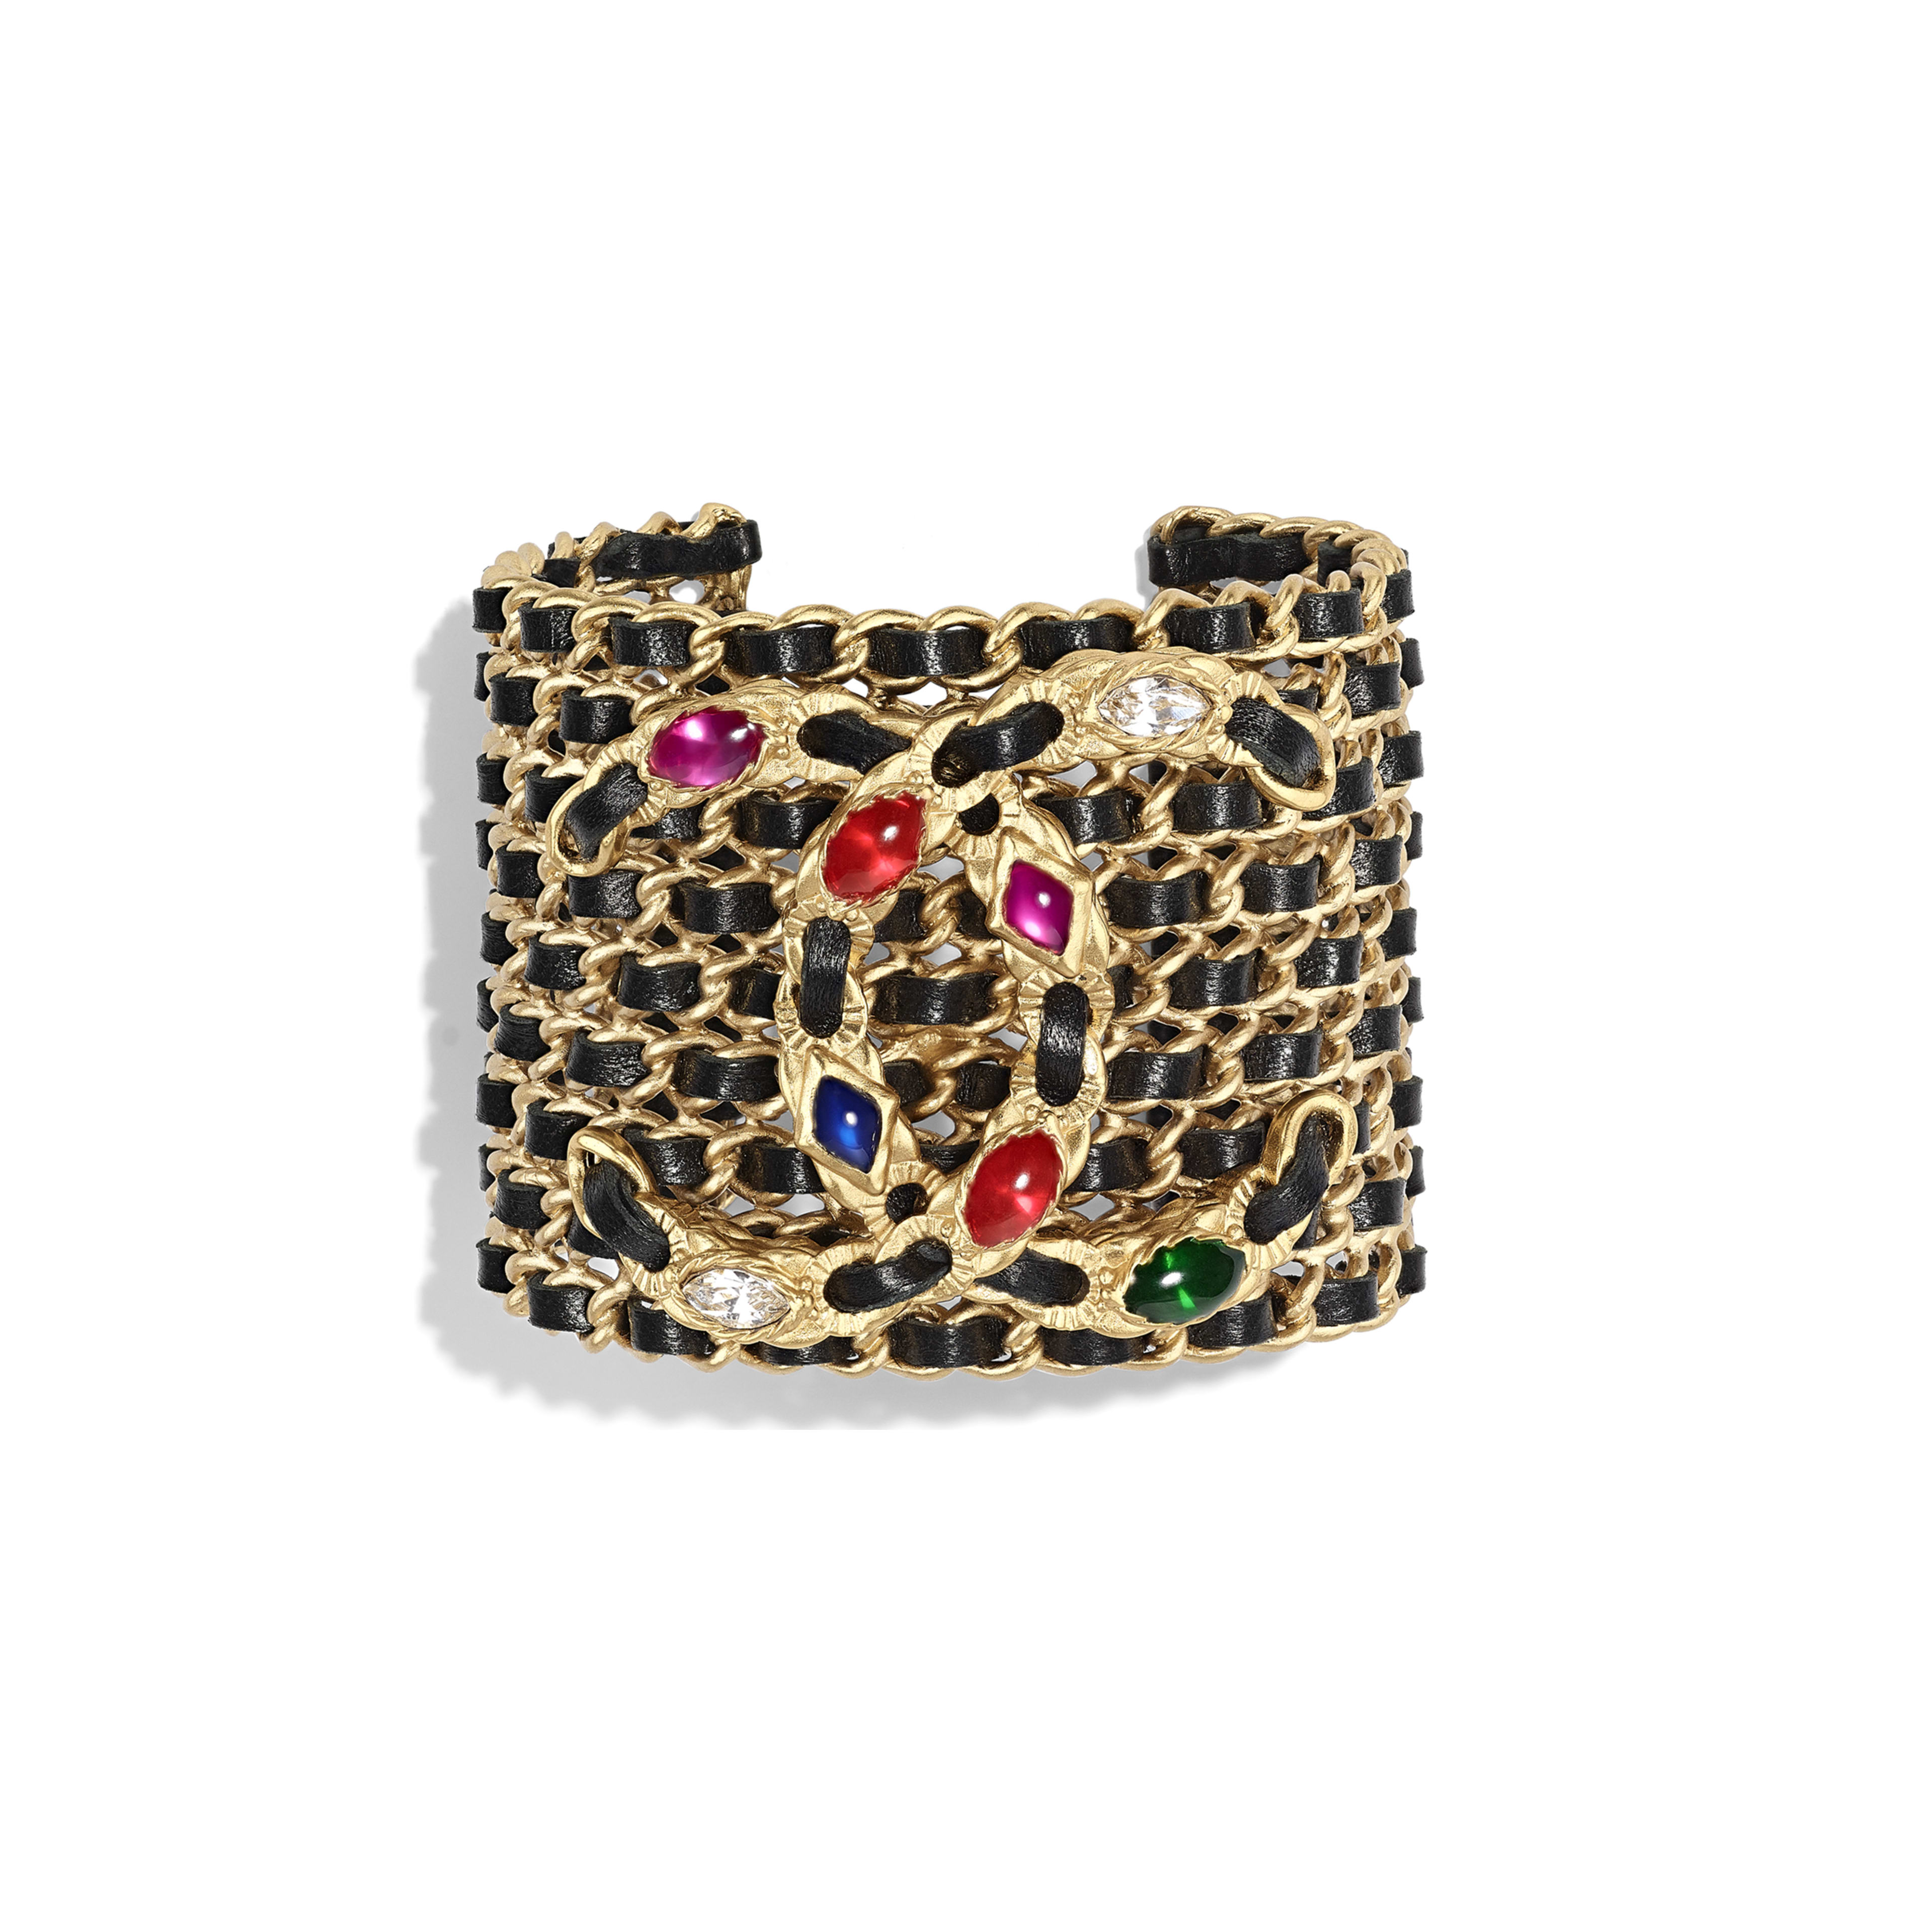 Cuff - Gold, Black, Crystal & Multicolor - Metal, lambskin, diamanté & resin - Default view - see full sized version